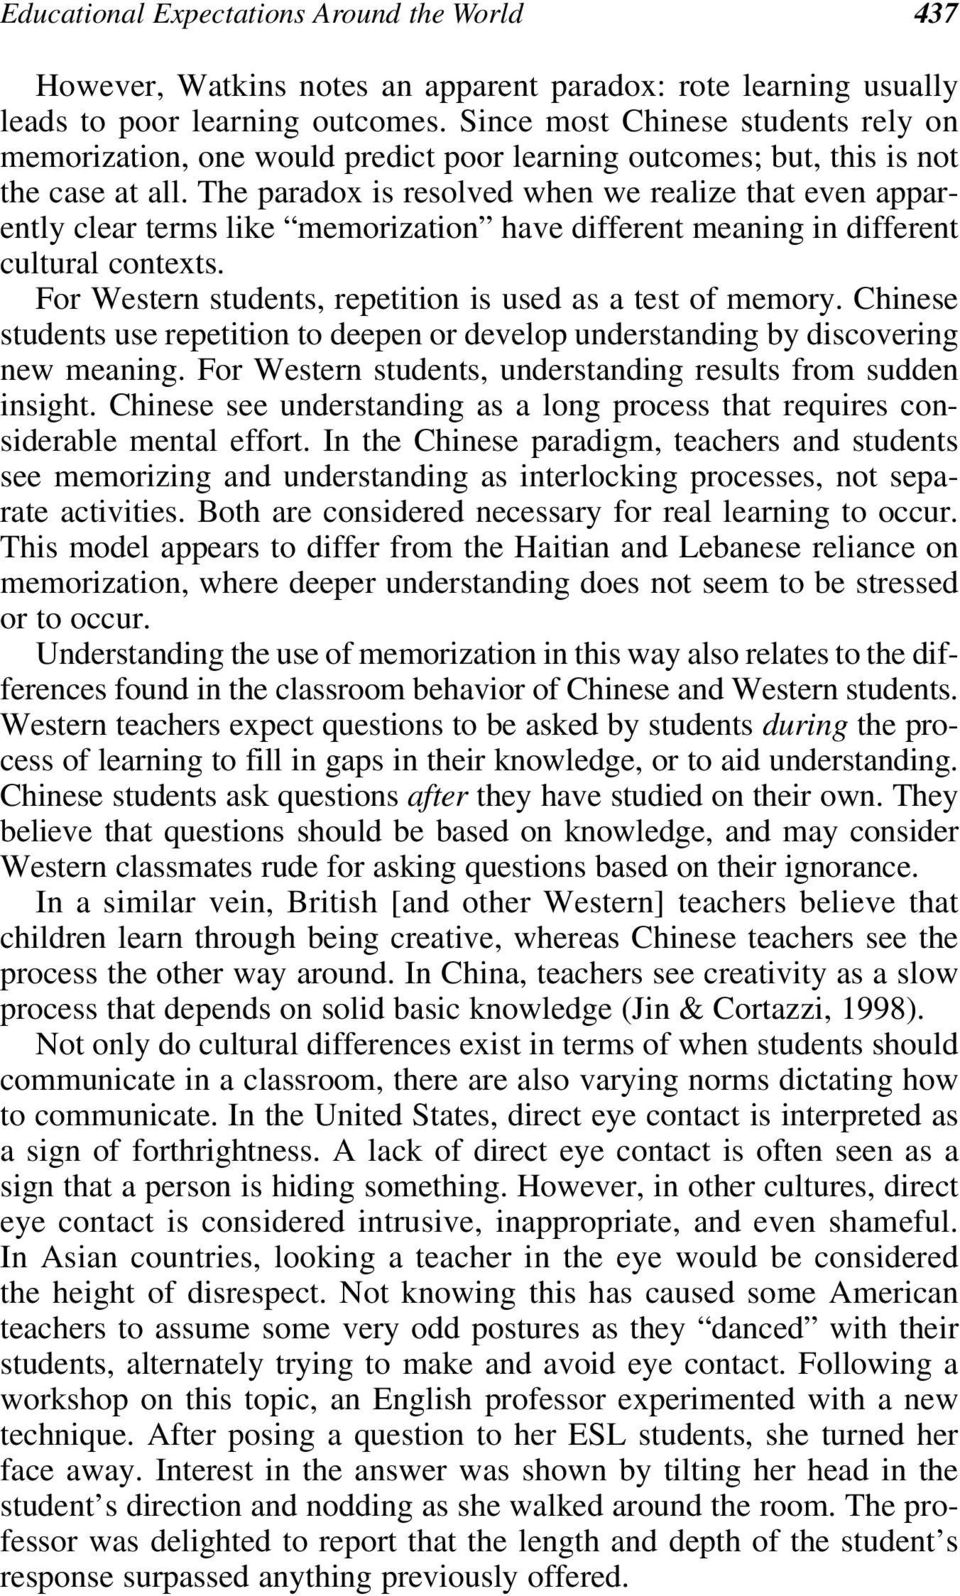 The paradox is resolved when we realize that even apparently clear terms like memorization have different meaning in different cultural contexts.